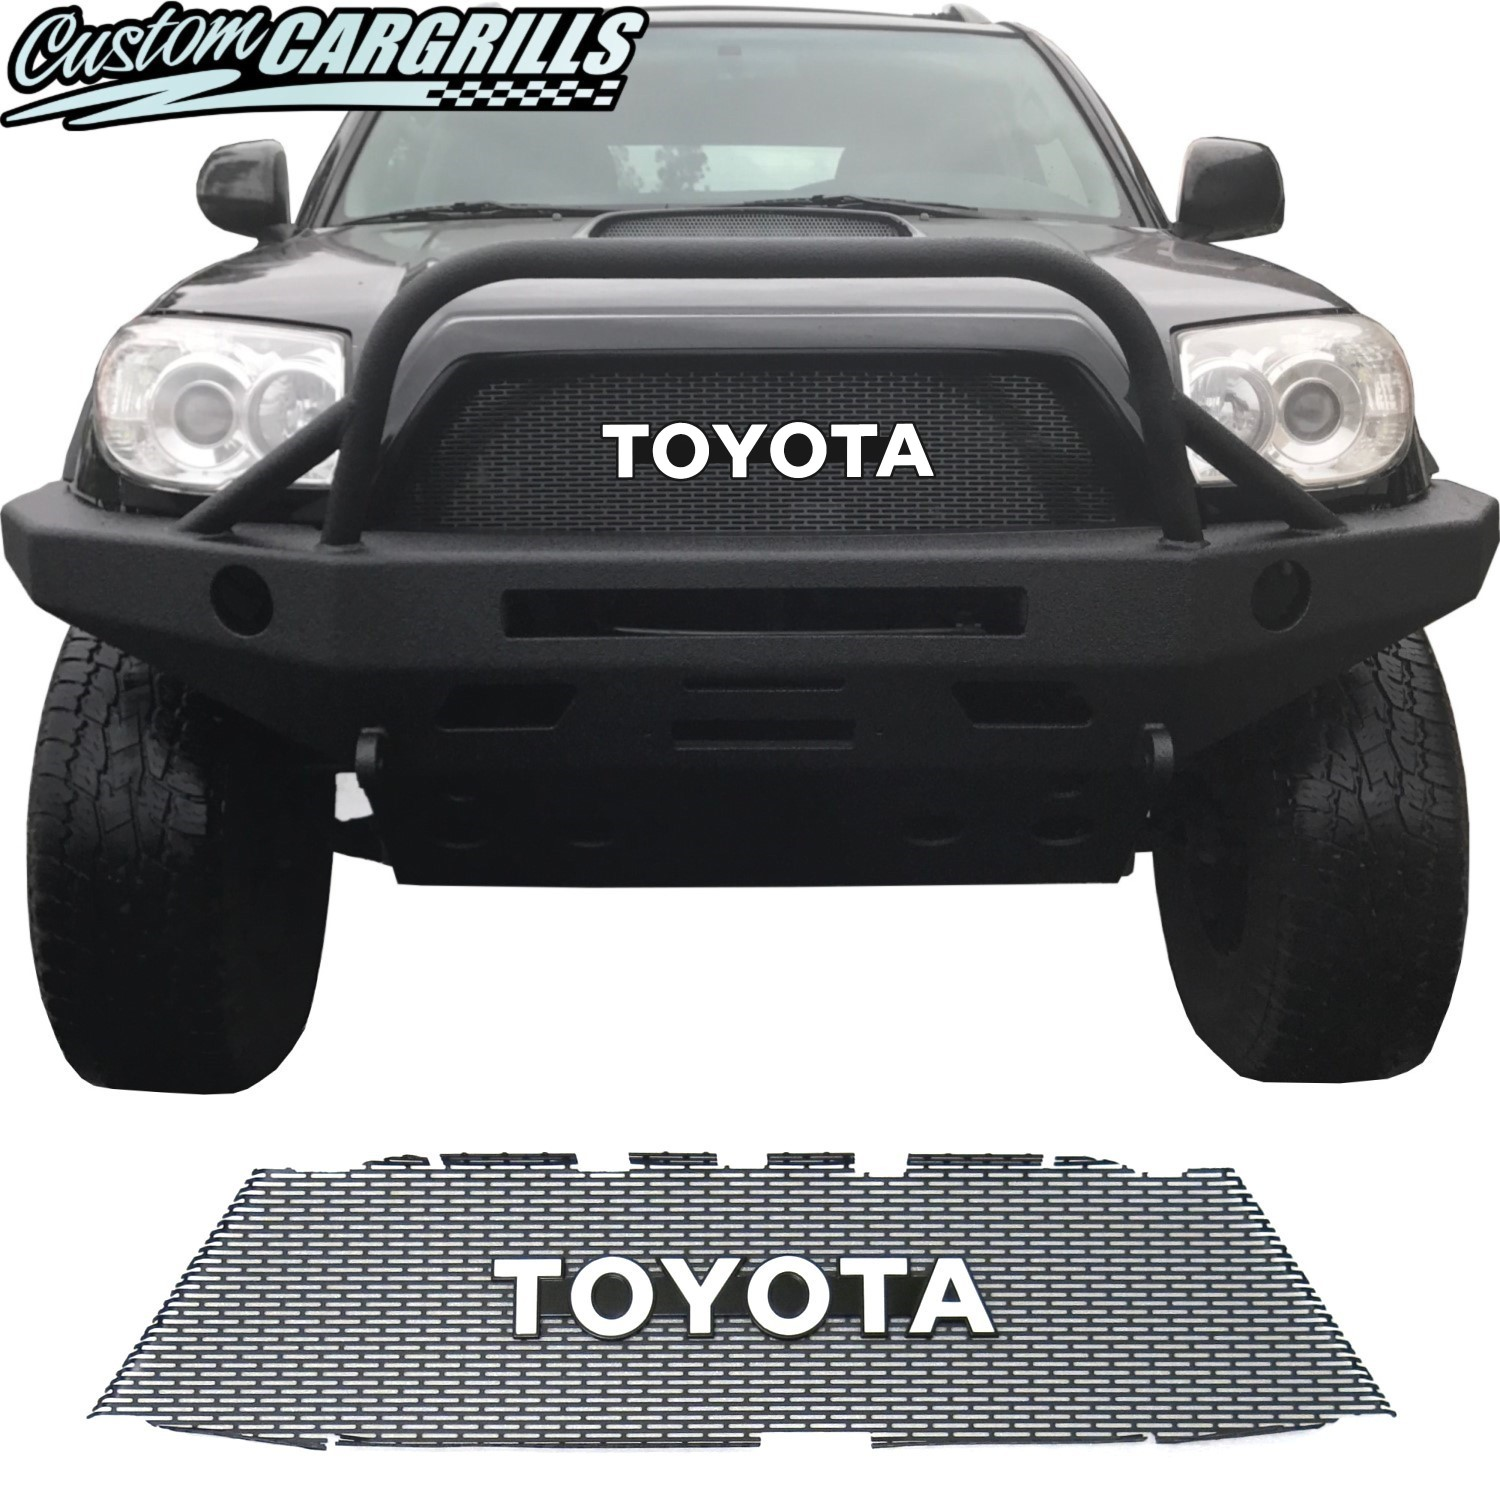 2006-09 Toyota 4Runner Grill Mesh with Toyota Emblem